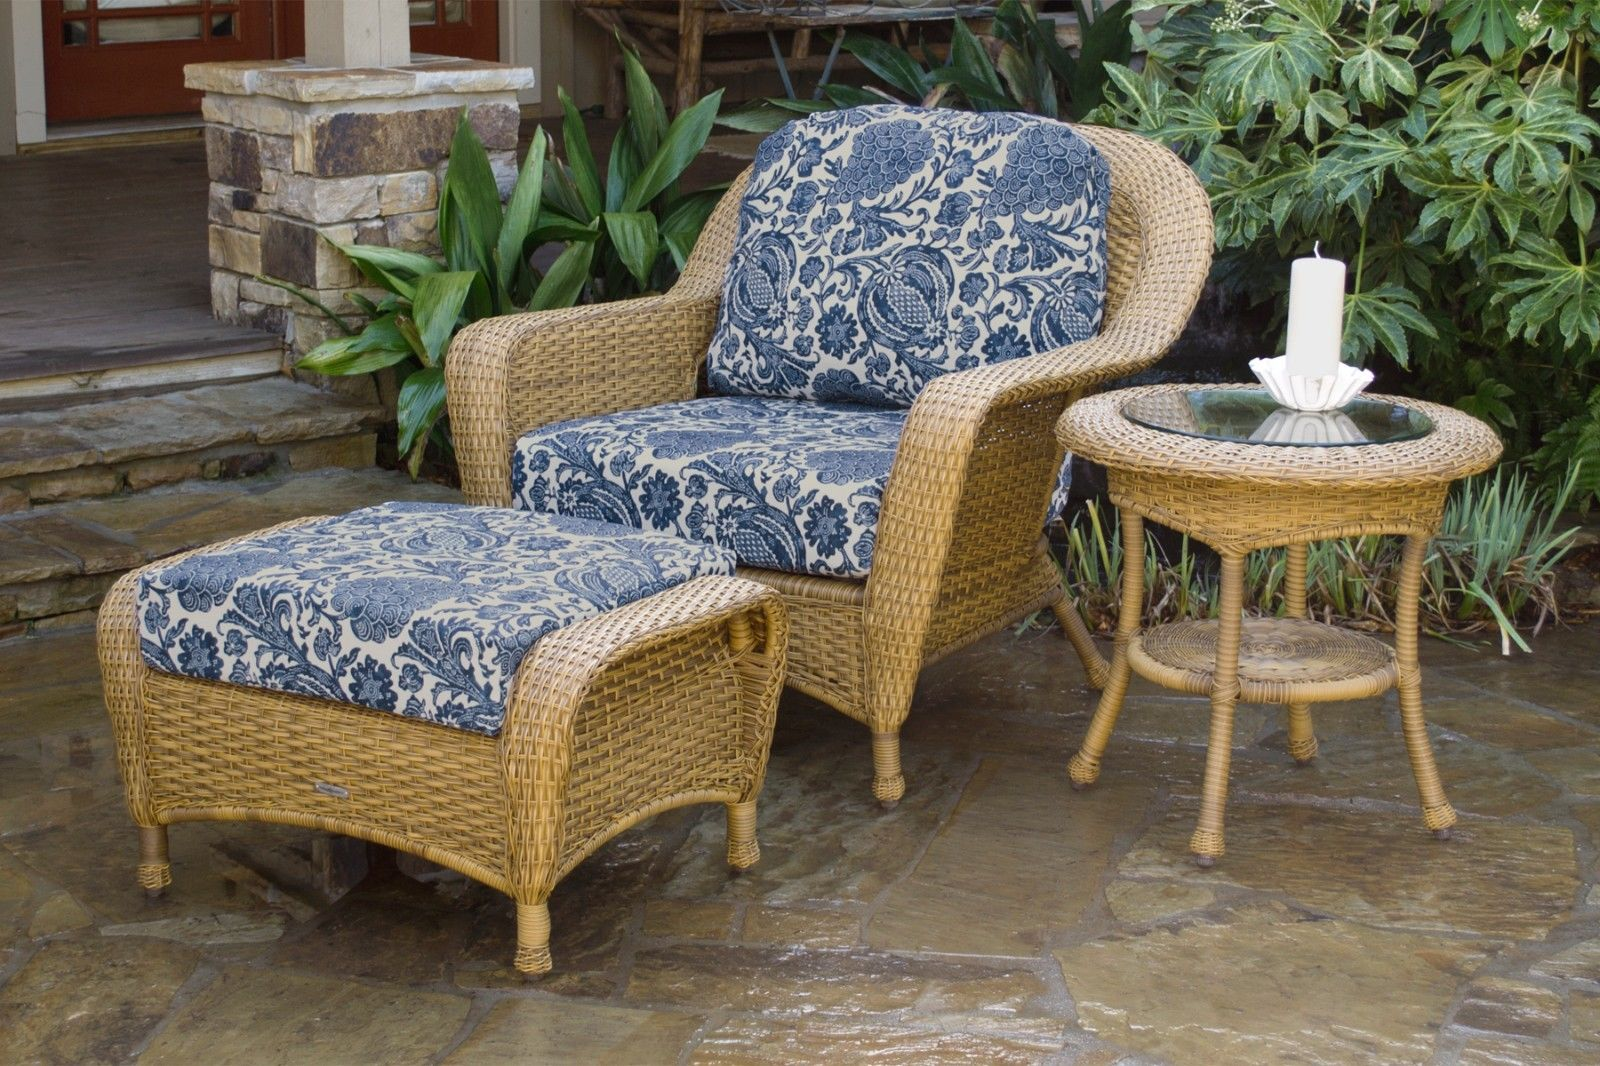 #96 - Outdoor Patio Furniture Mojave Resin Wicker Club Chair Ottoman and End Table